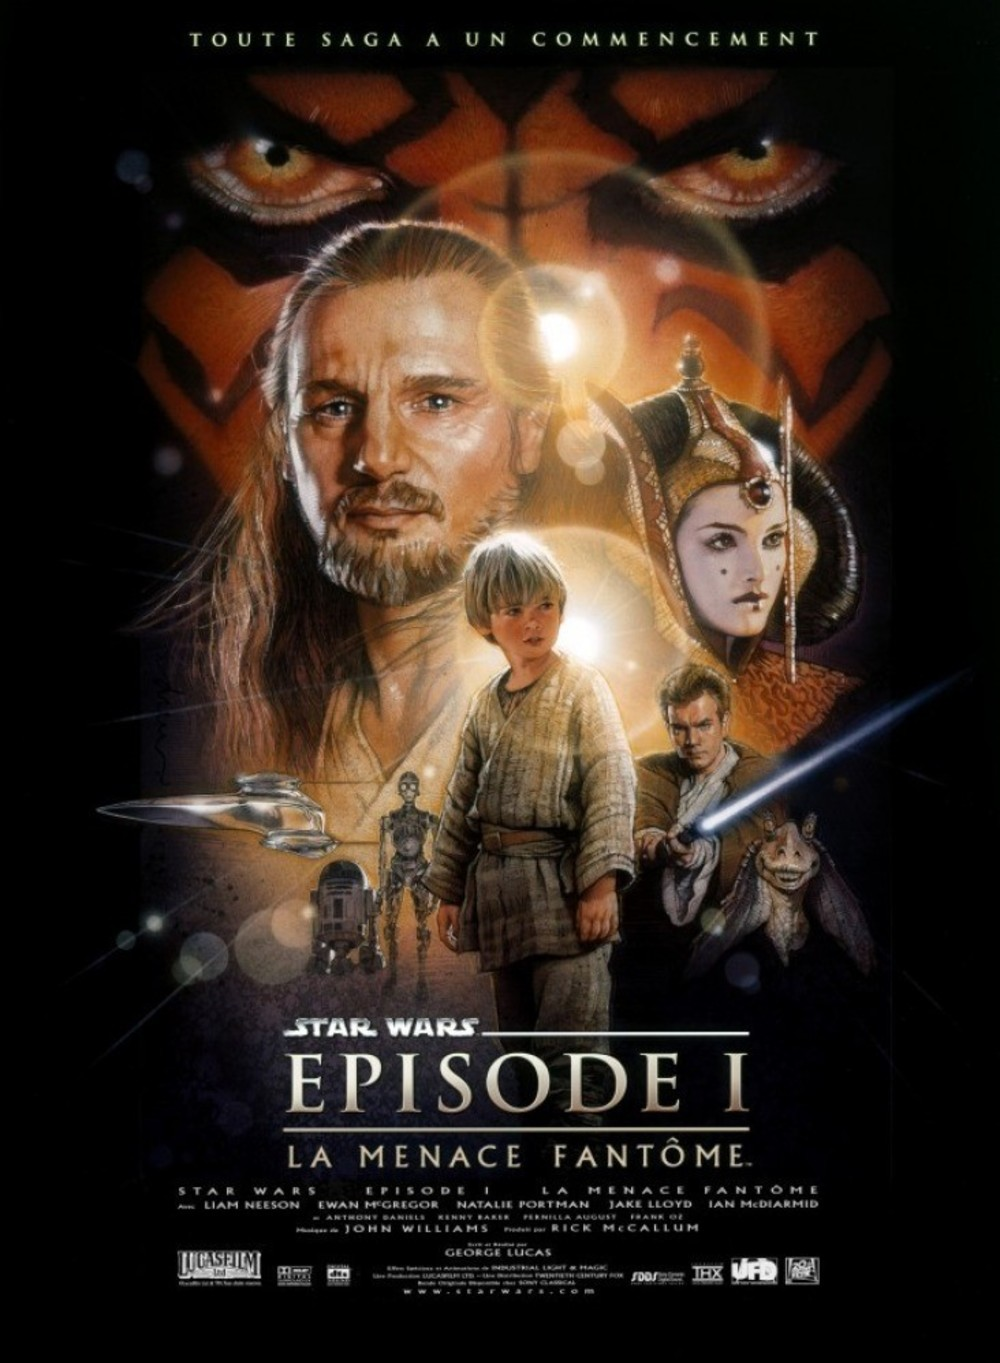 disney affiche poster star wars épisode 1 la menace fantôme